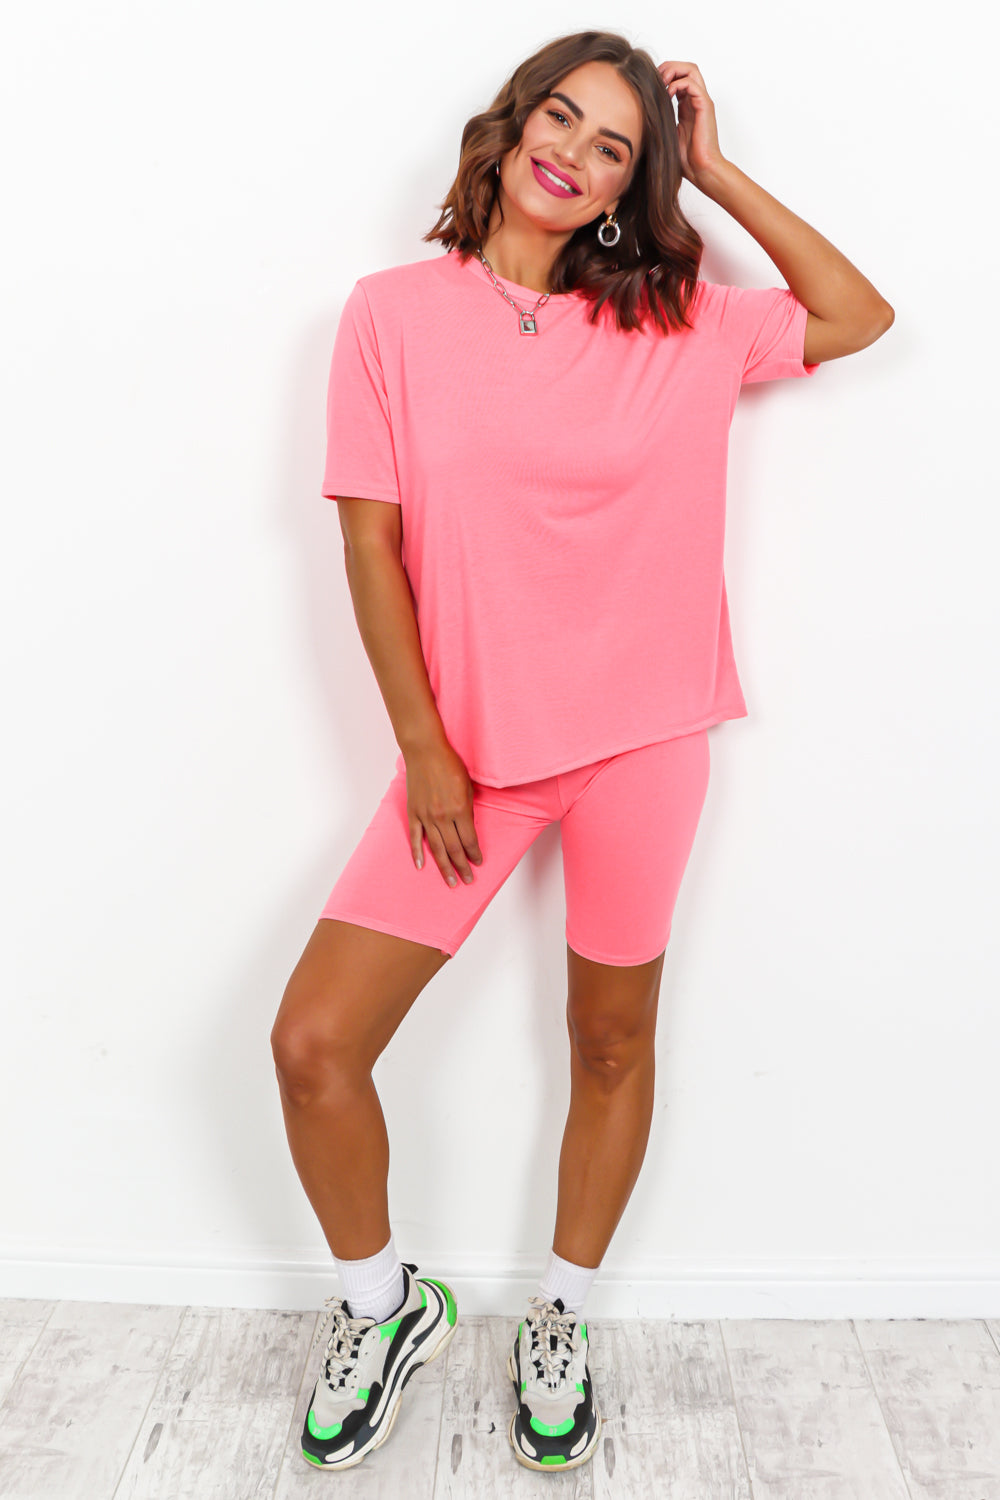 Neon Pink Cycle Short And T-shirt Coordinate Set